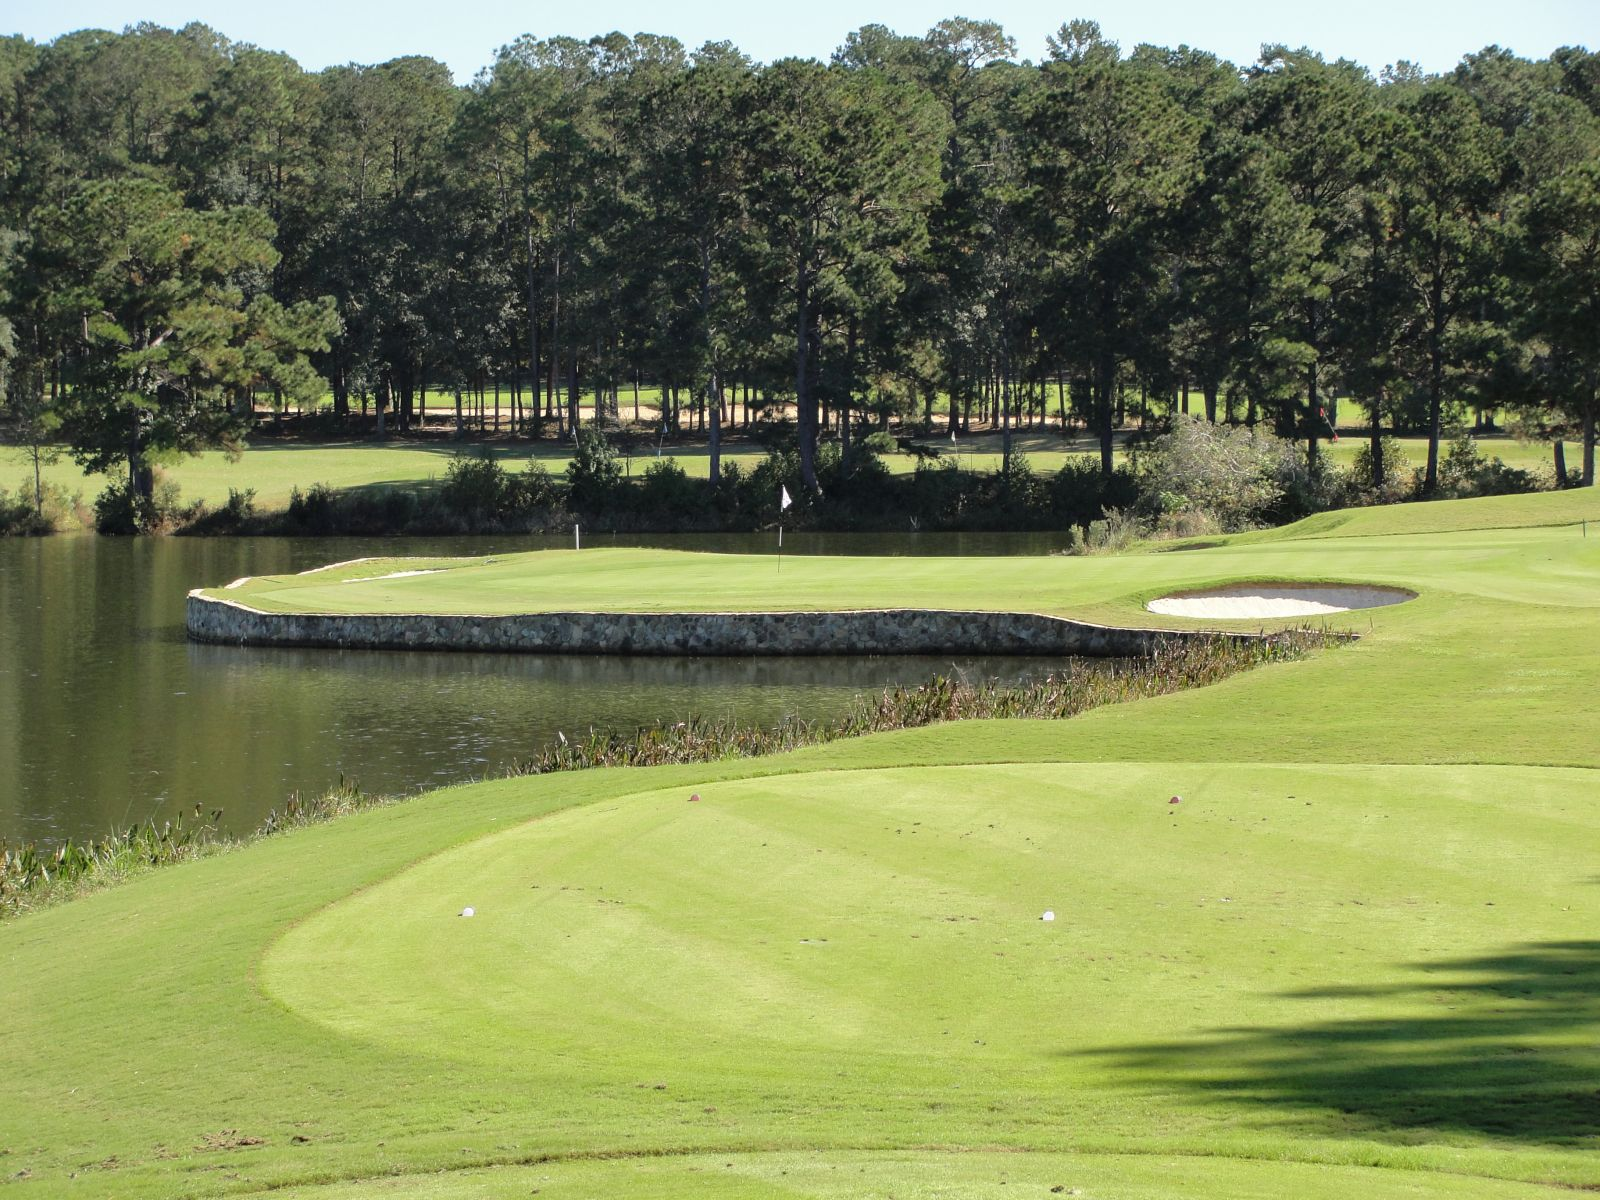 Tallahassee golf course - golden eagle golf